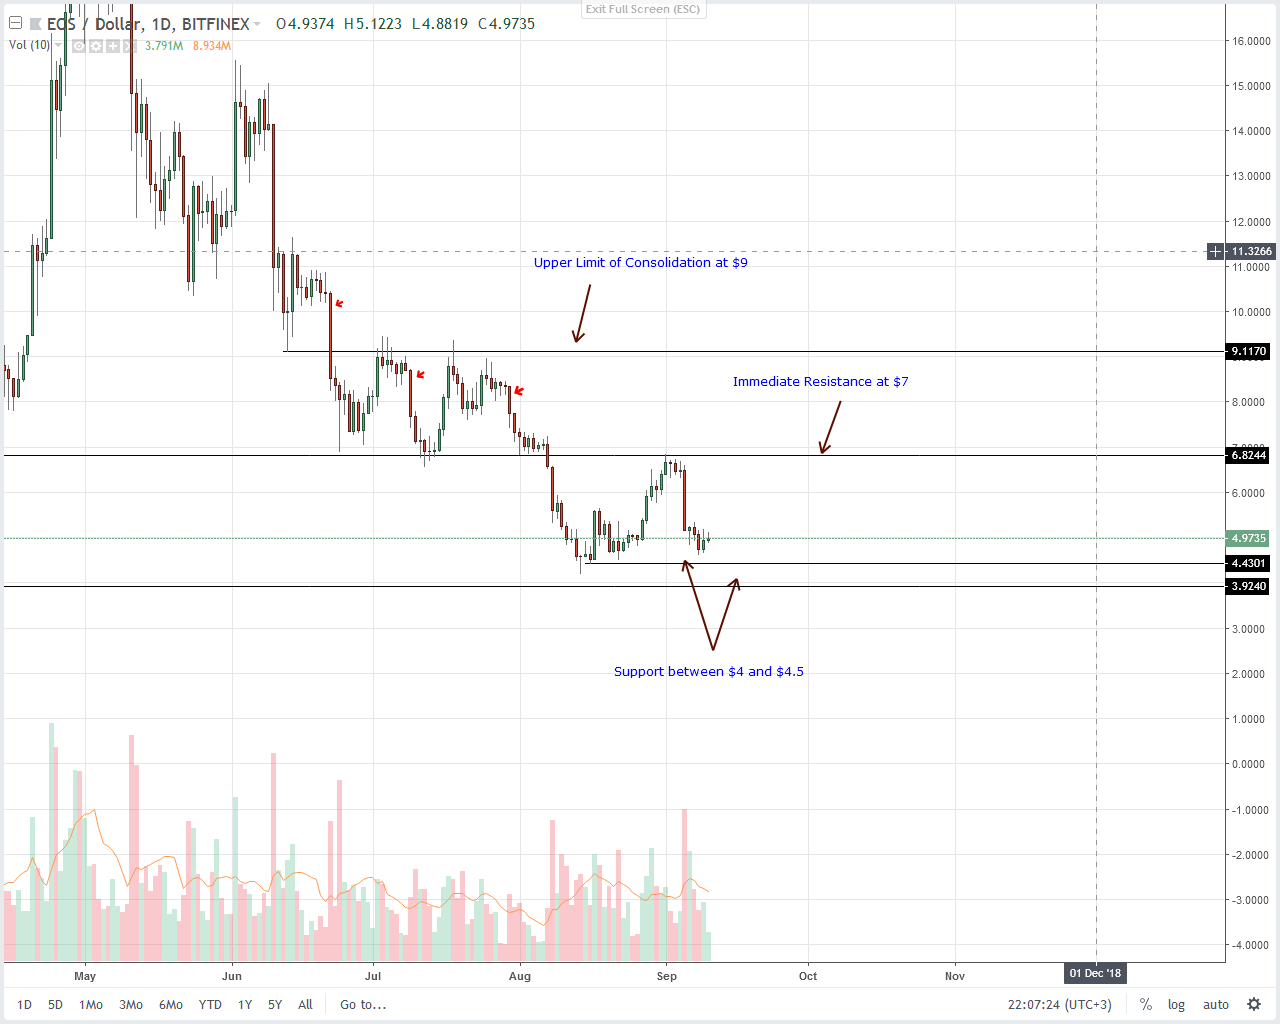 EOS Daily Chart Sep 11